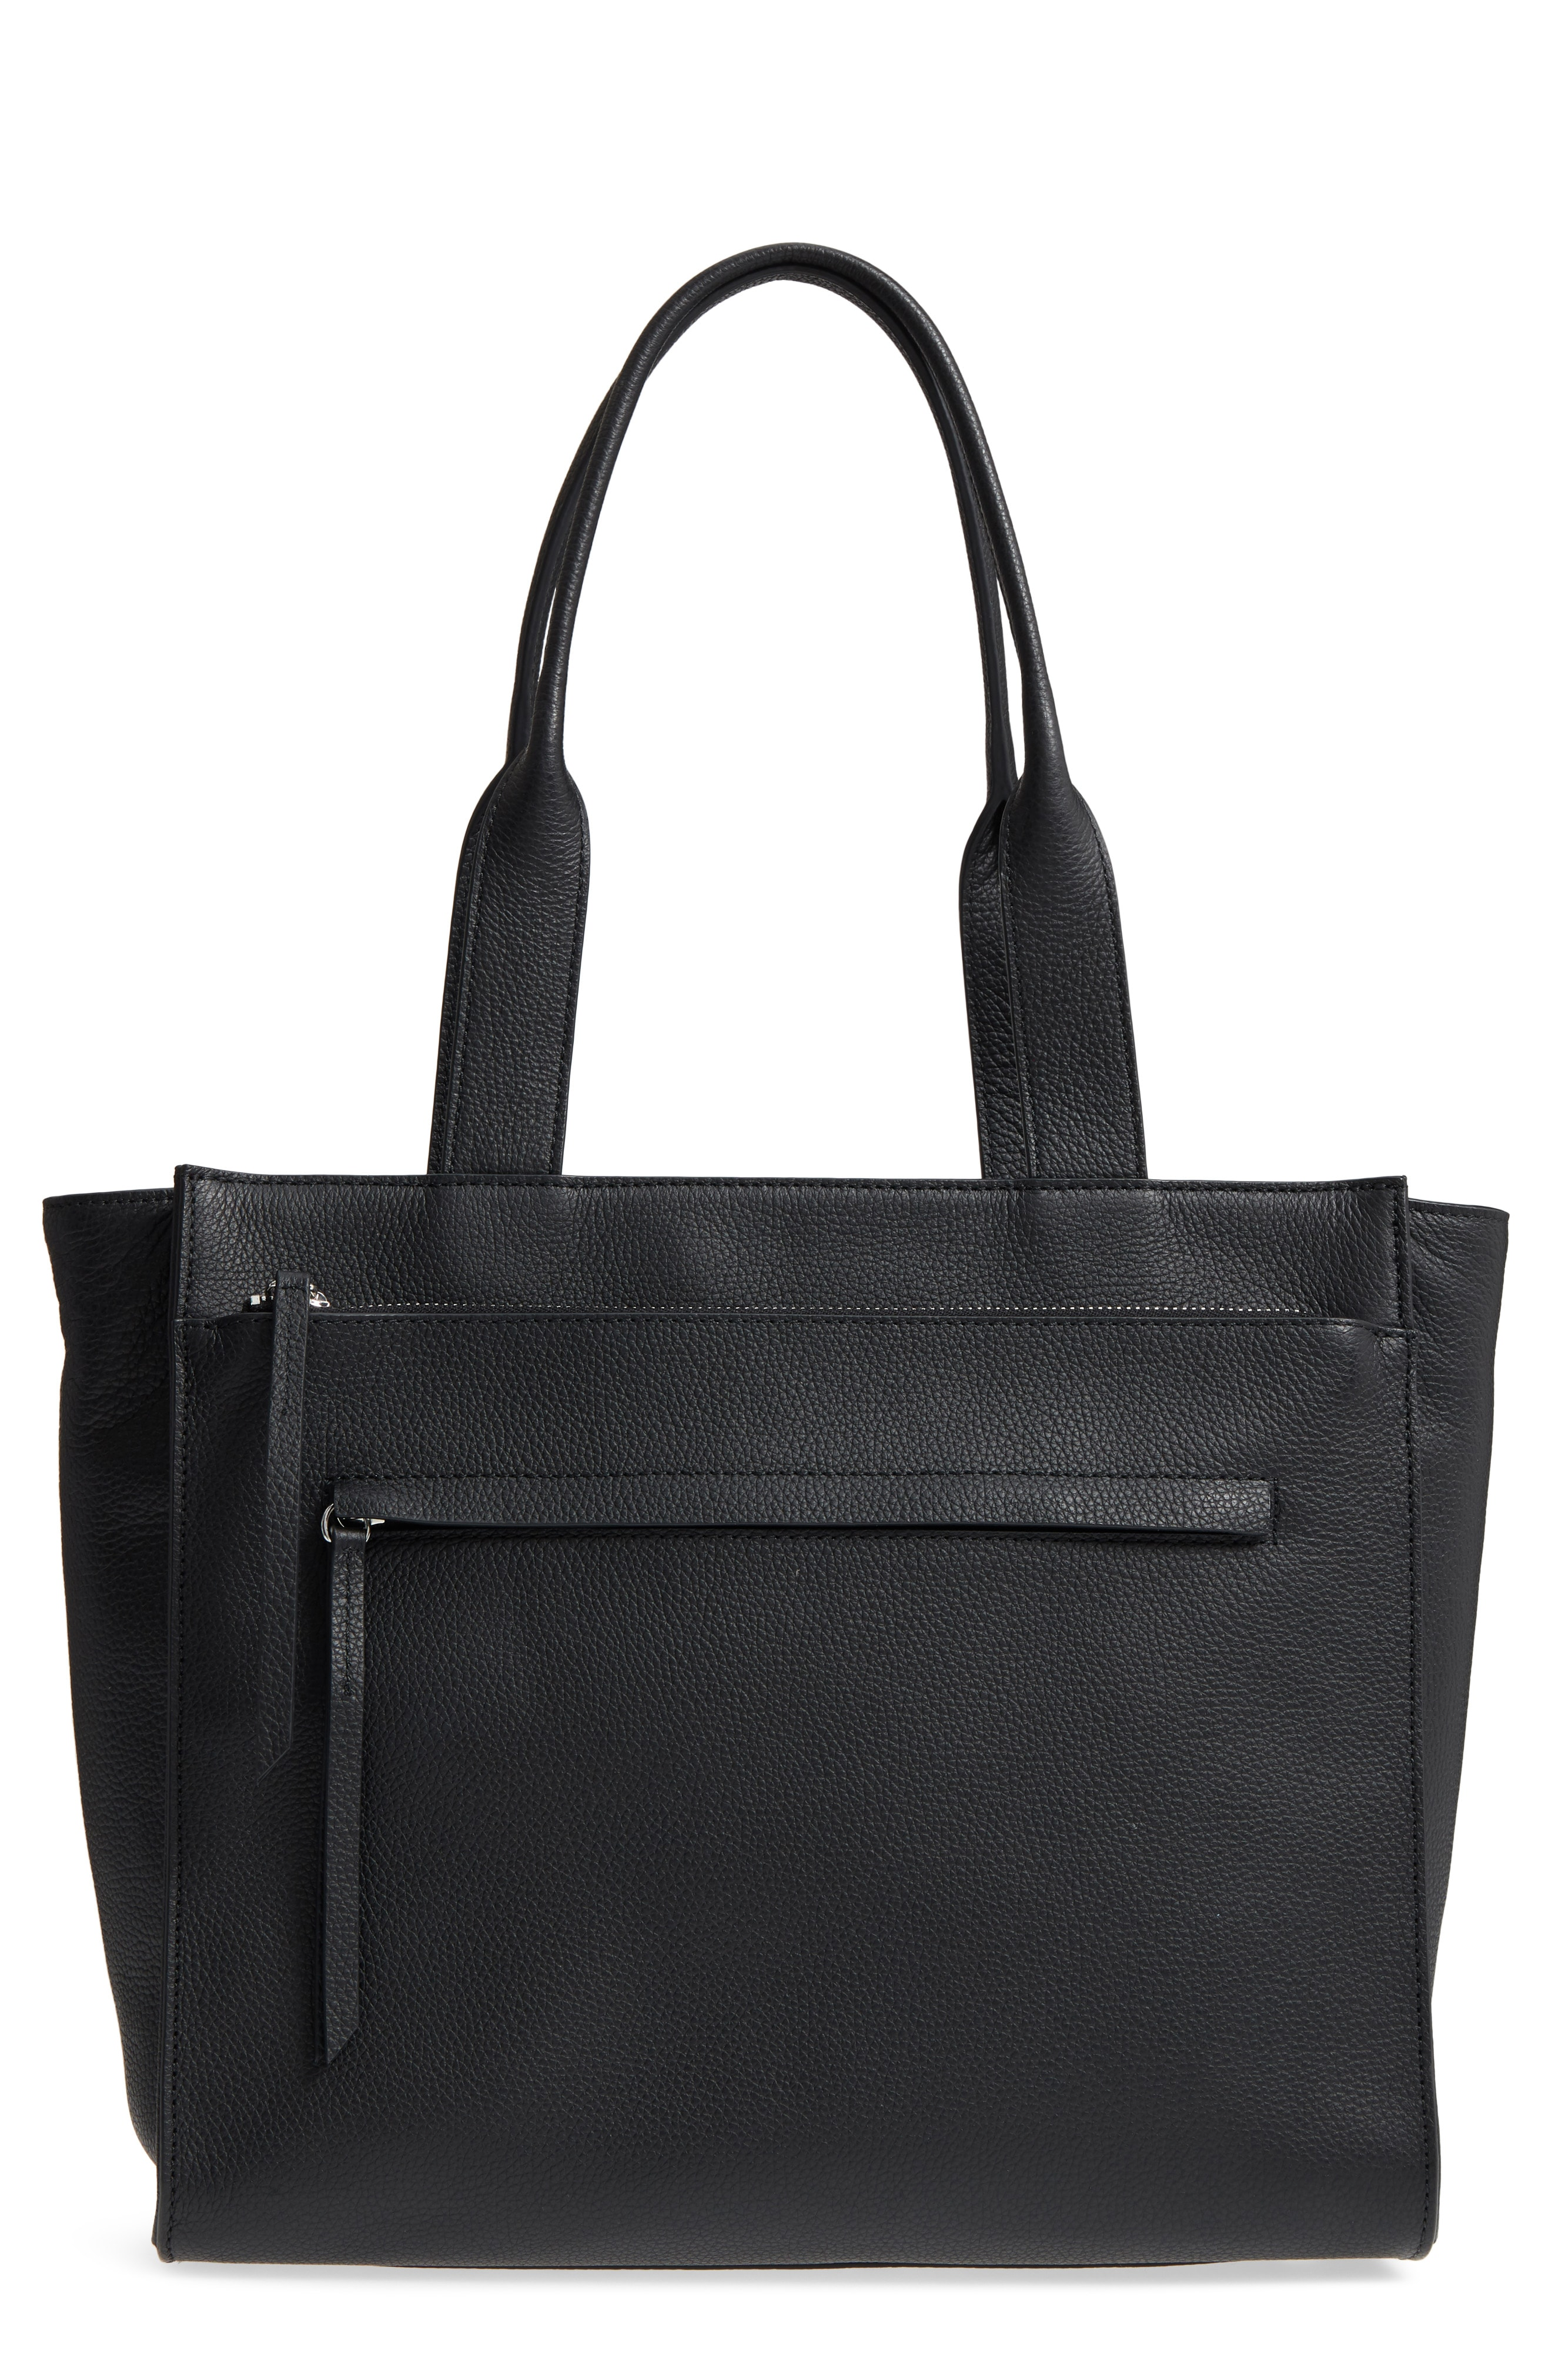 Bags in black are available in various designs